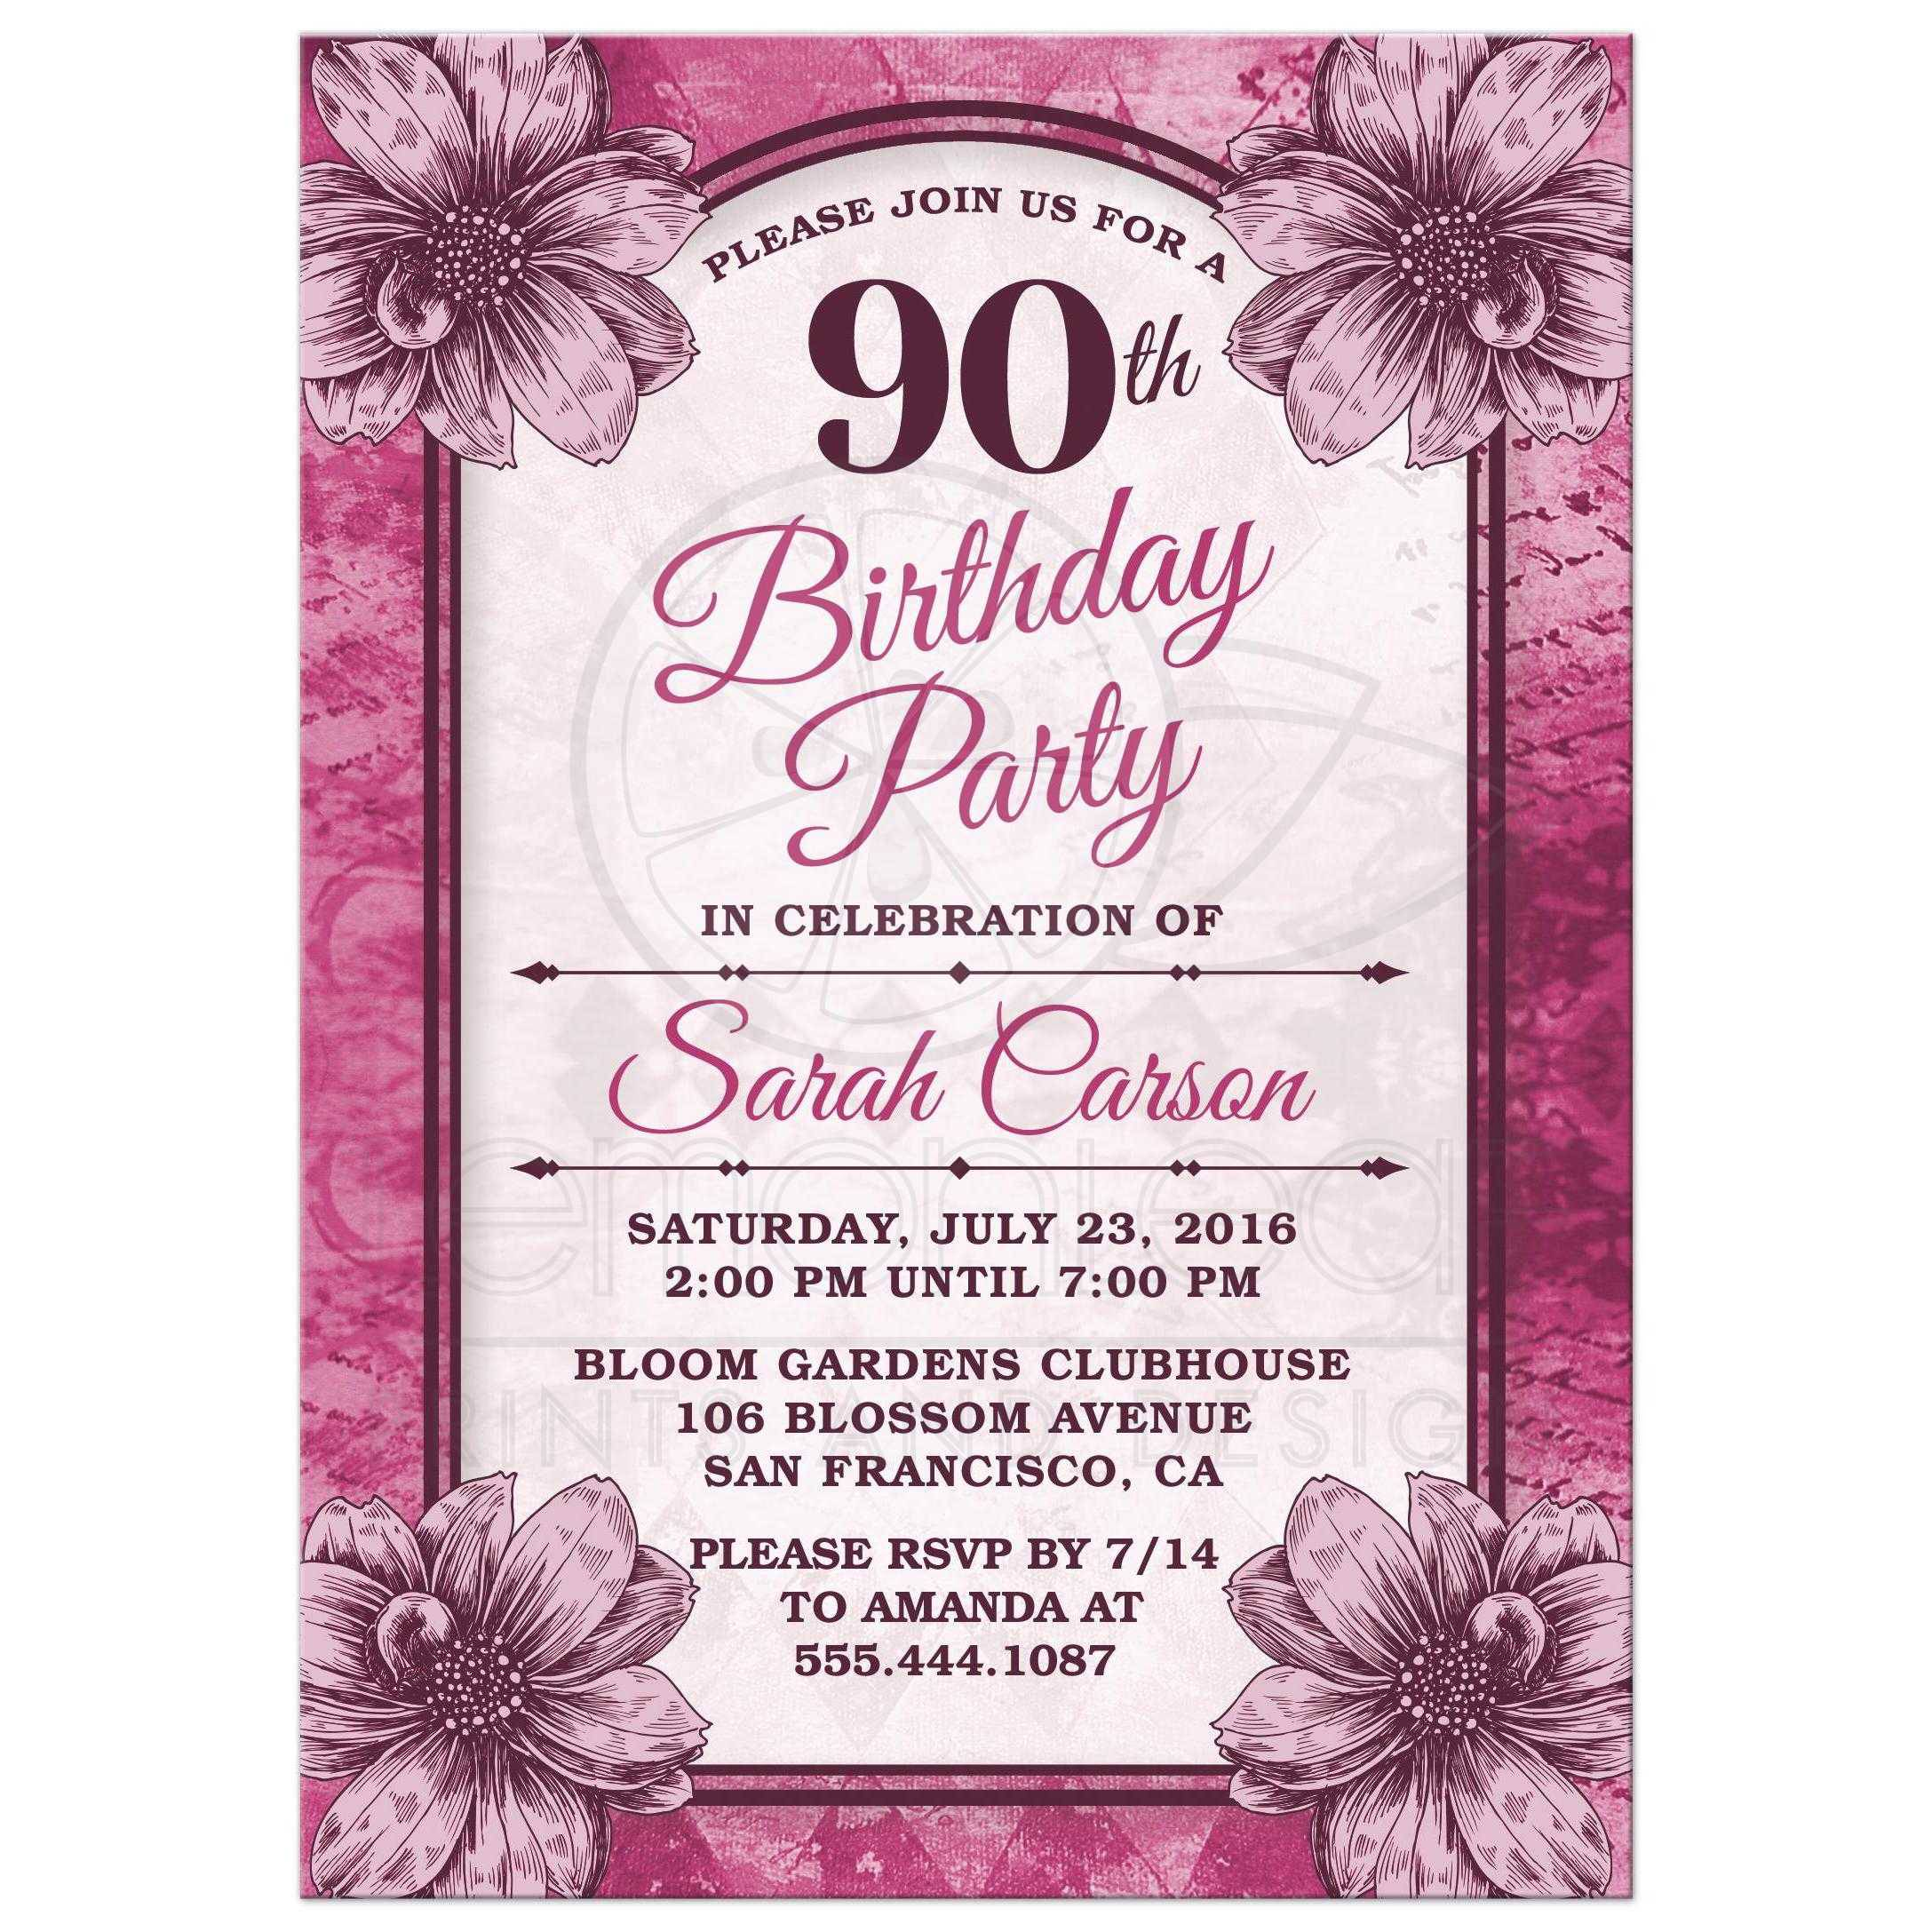 free printable 90th birthday invitation templates ; 7b142fc7c21b58b32f432bbcc9e292cd